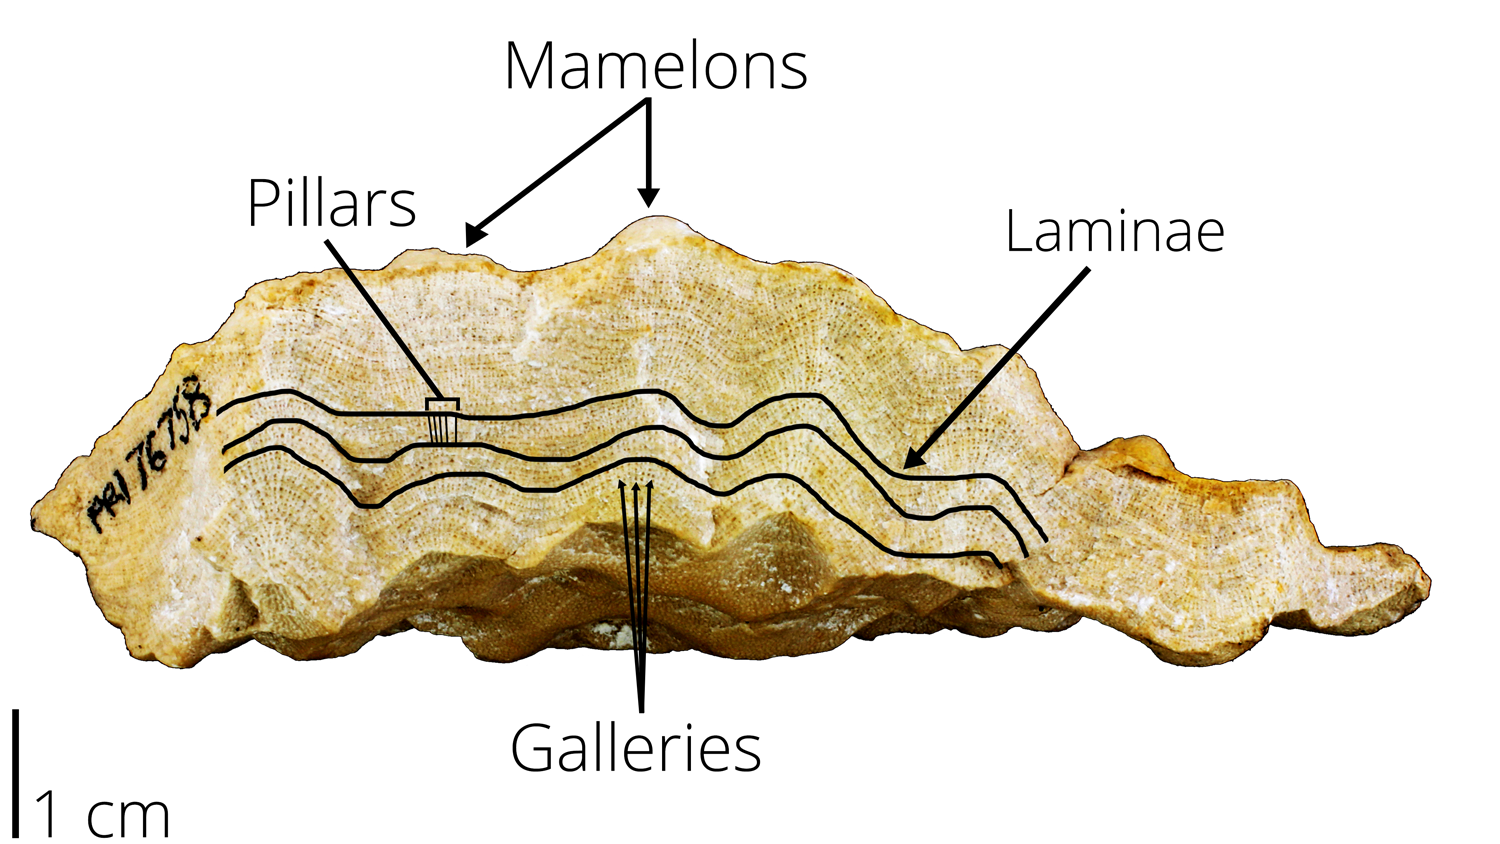 Diagram showing stromatoporoid features, including pillars, mamelons, galleries, and laminae